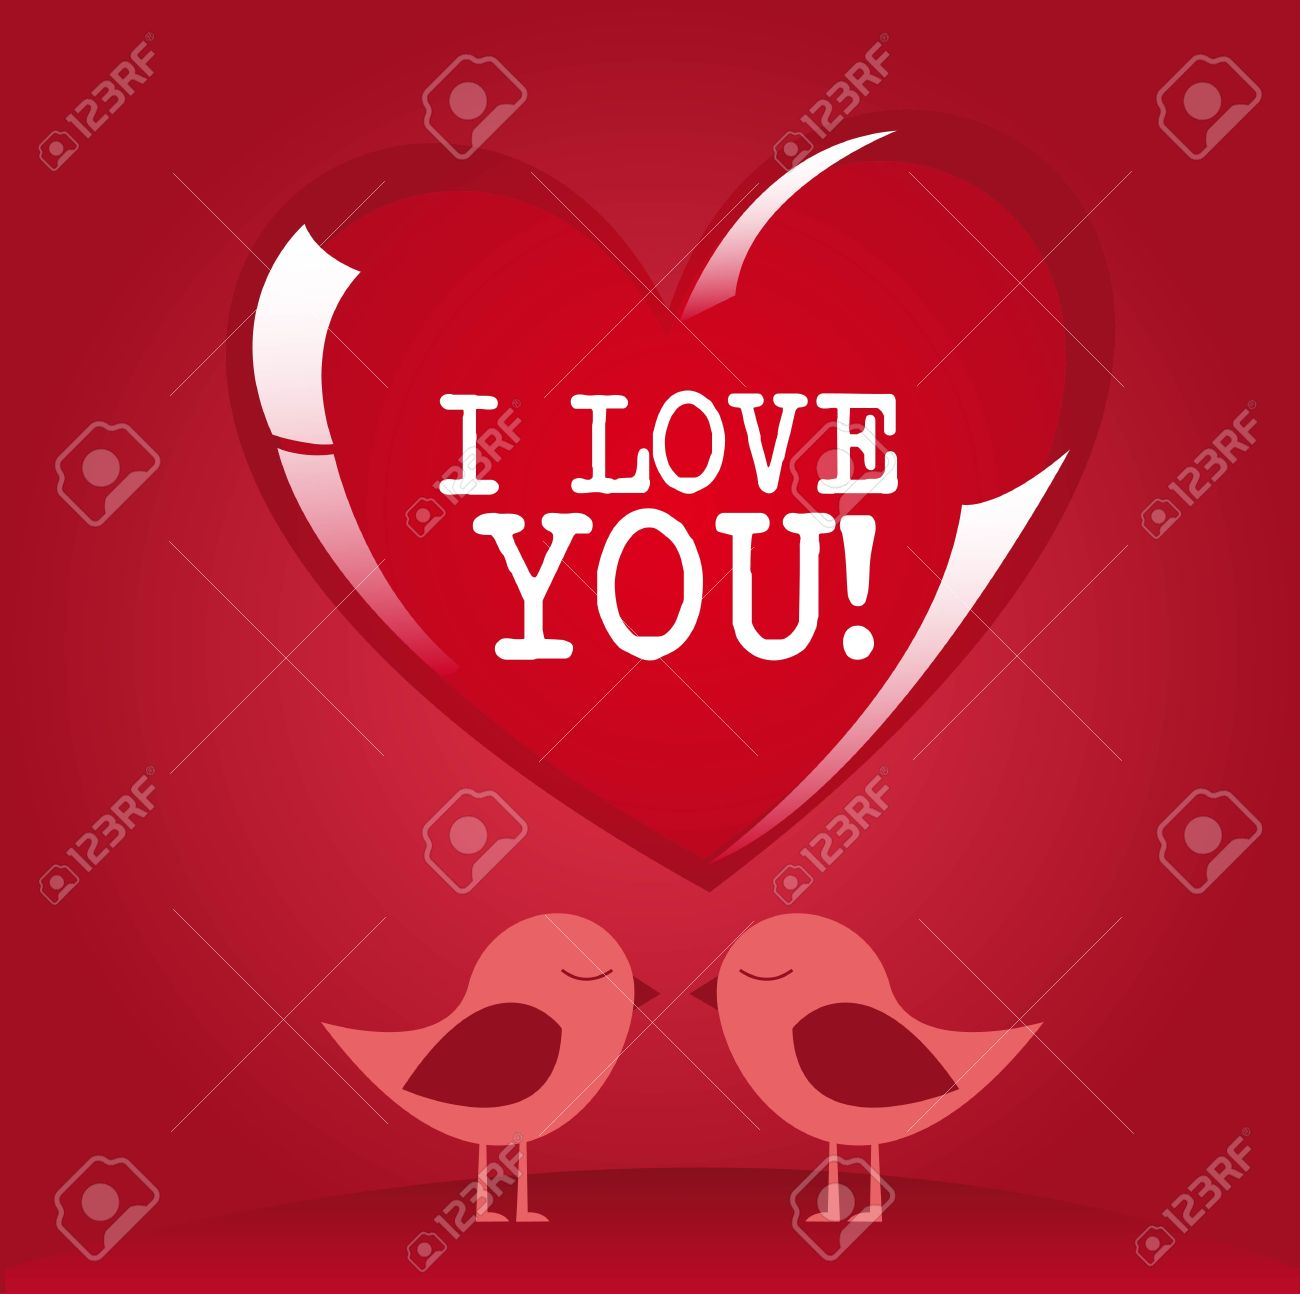 I love you message on red heart with lovely birds Stock Vector - 12136687